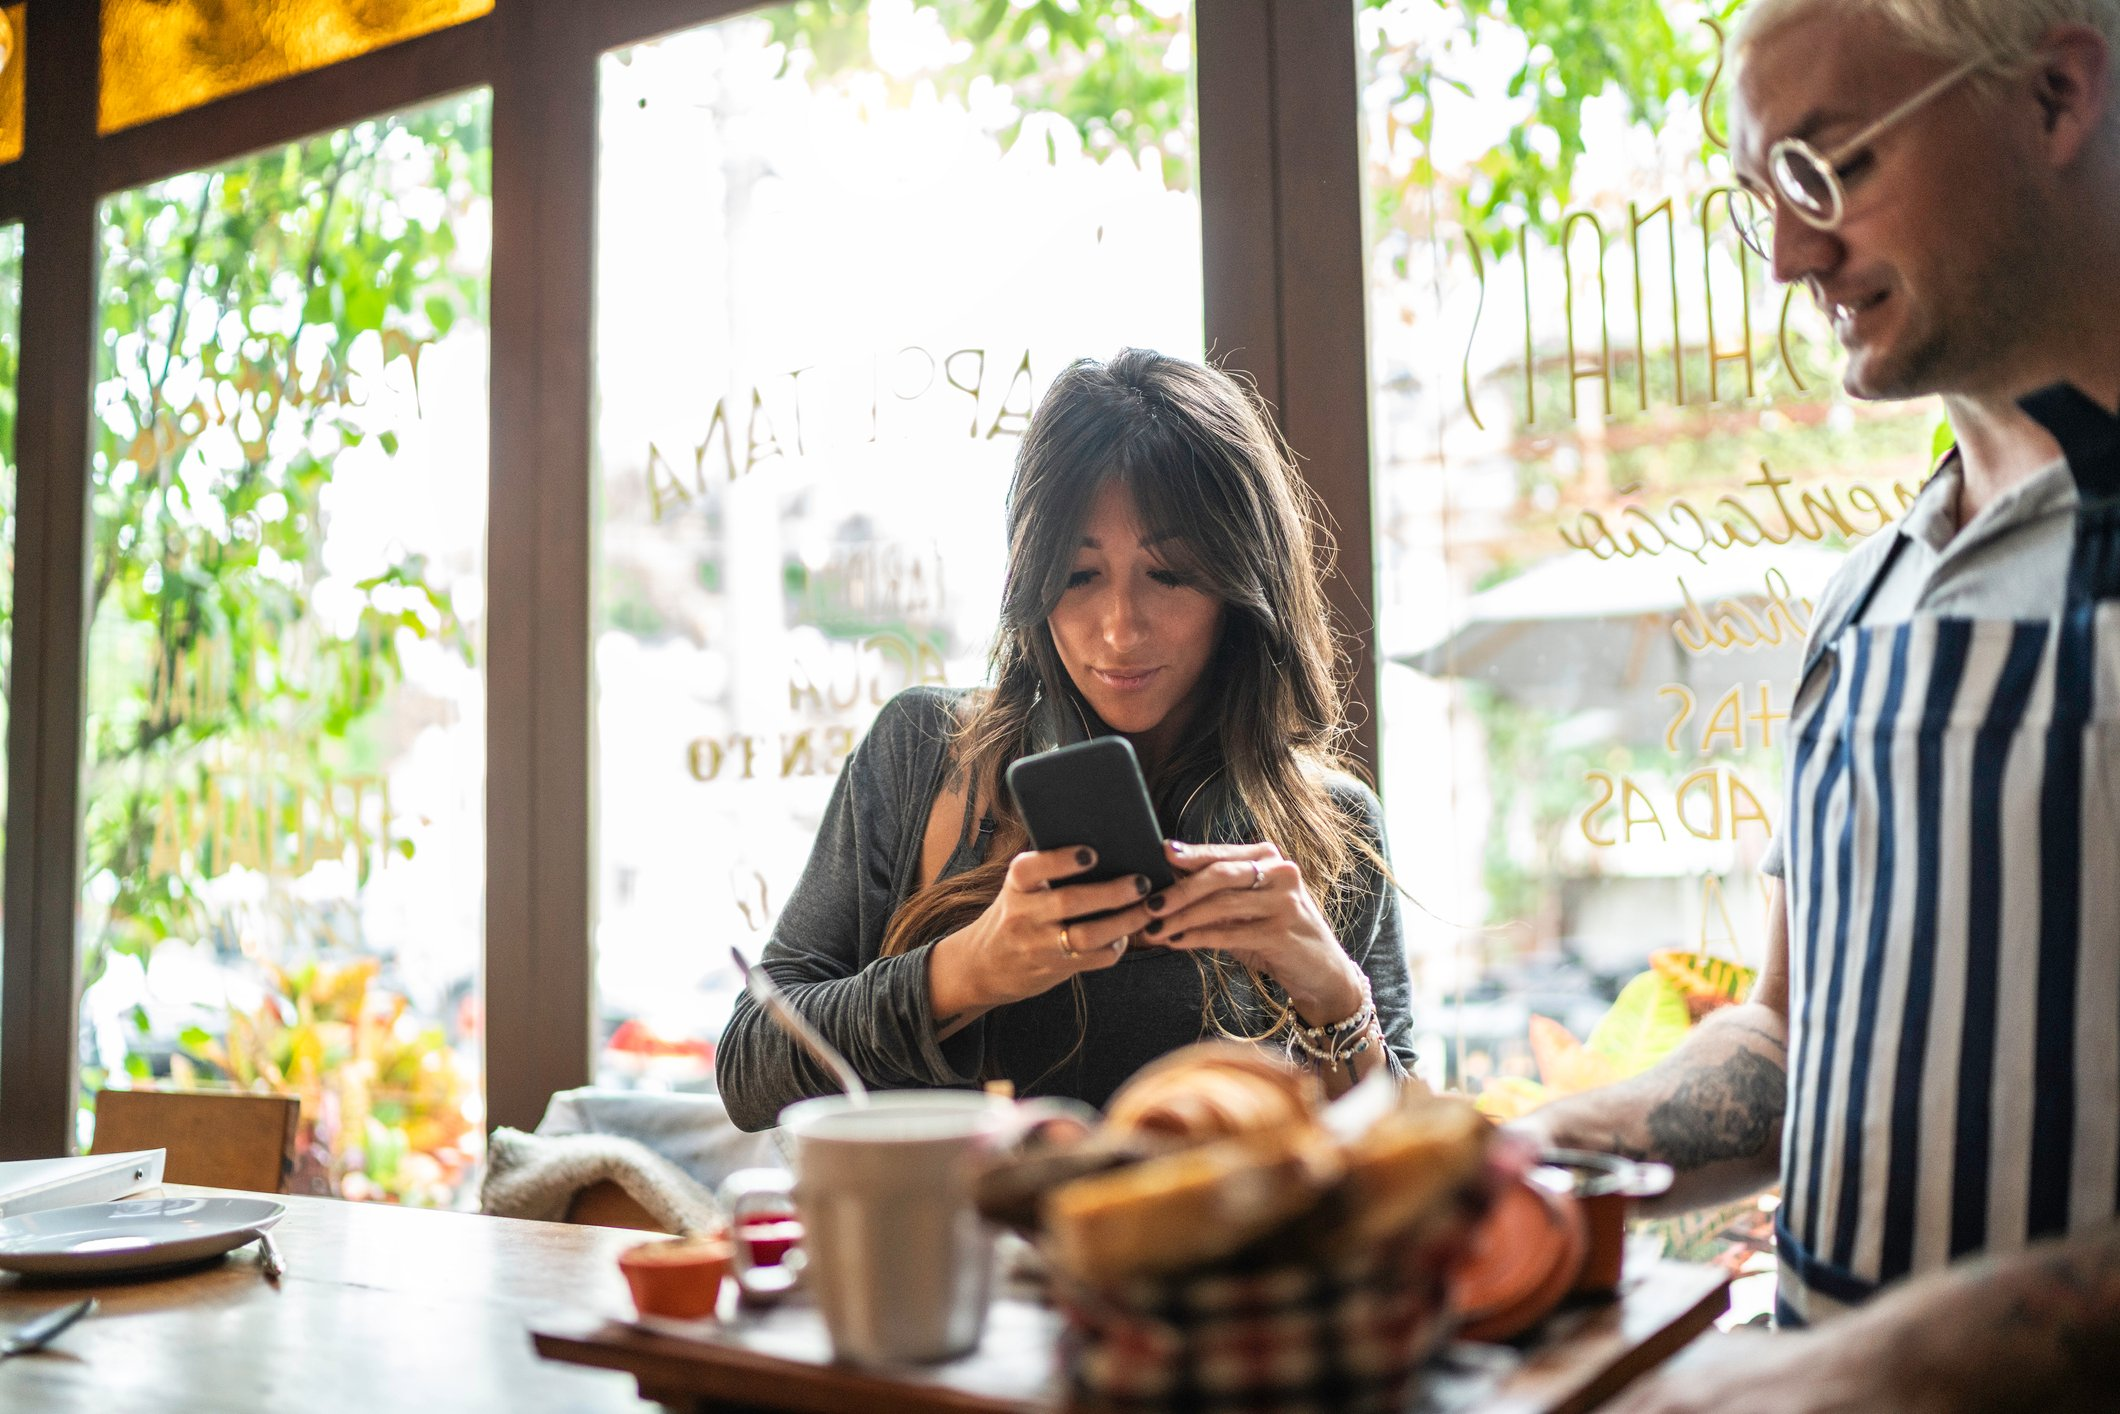 Woman taking photos of her food for social media, waiter by her side